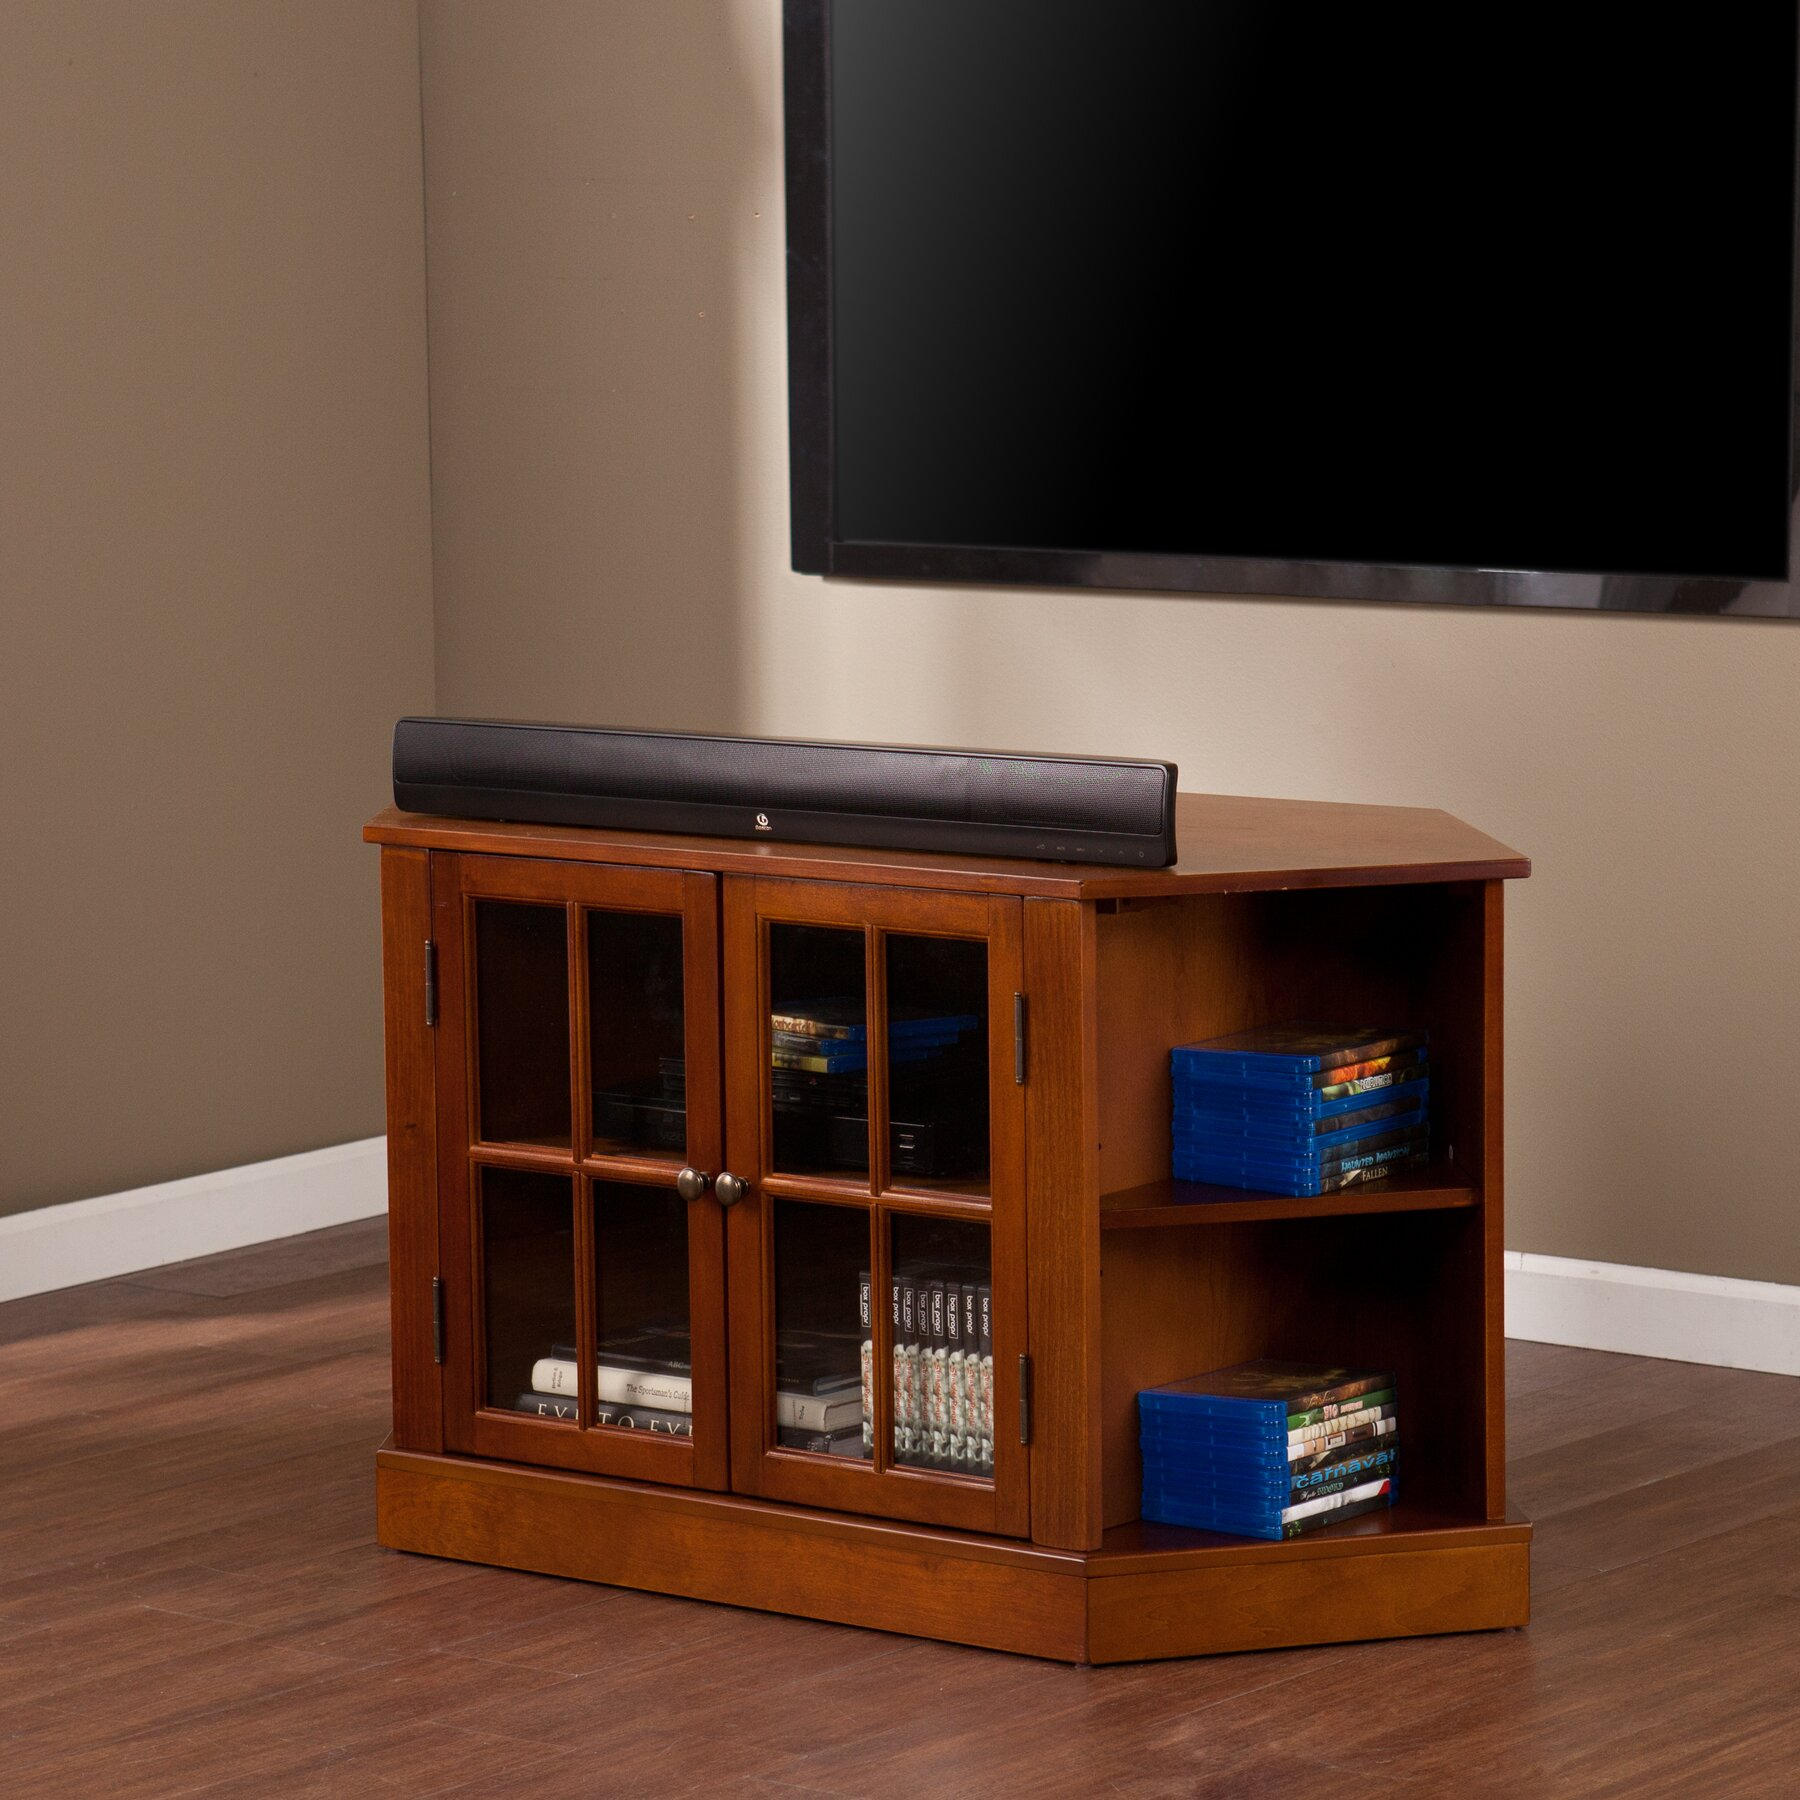 Darby Home Co Lasalle 46quot Corner TV Stand amp Reviews Wayfair